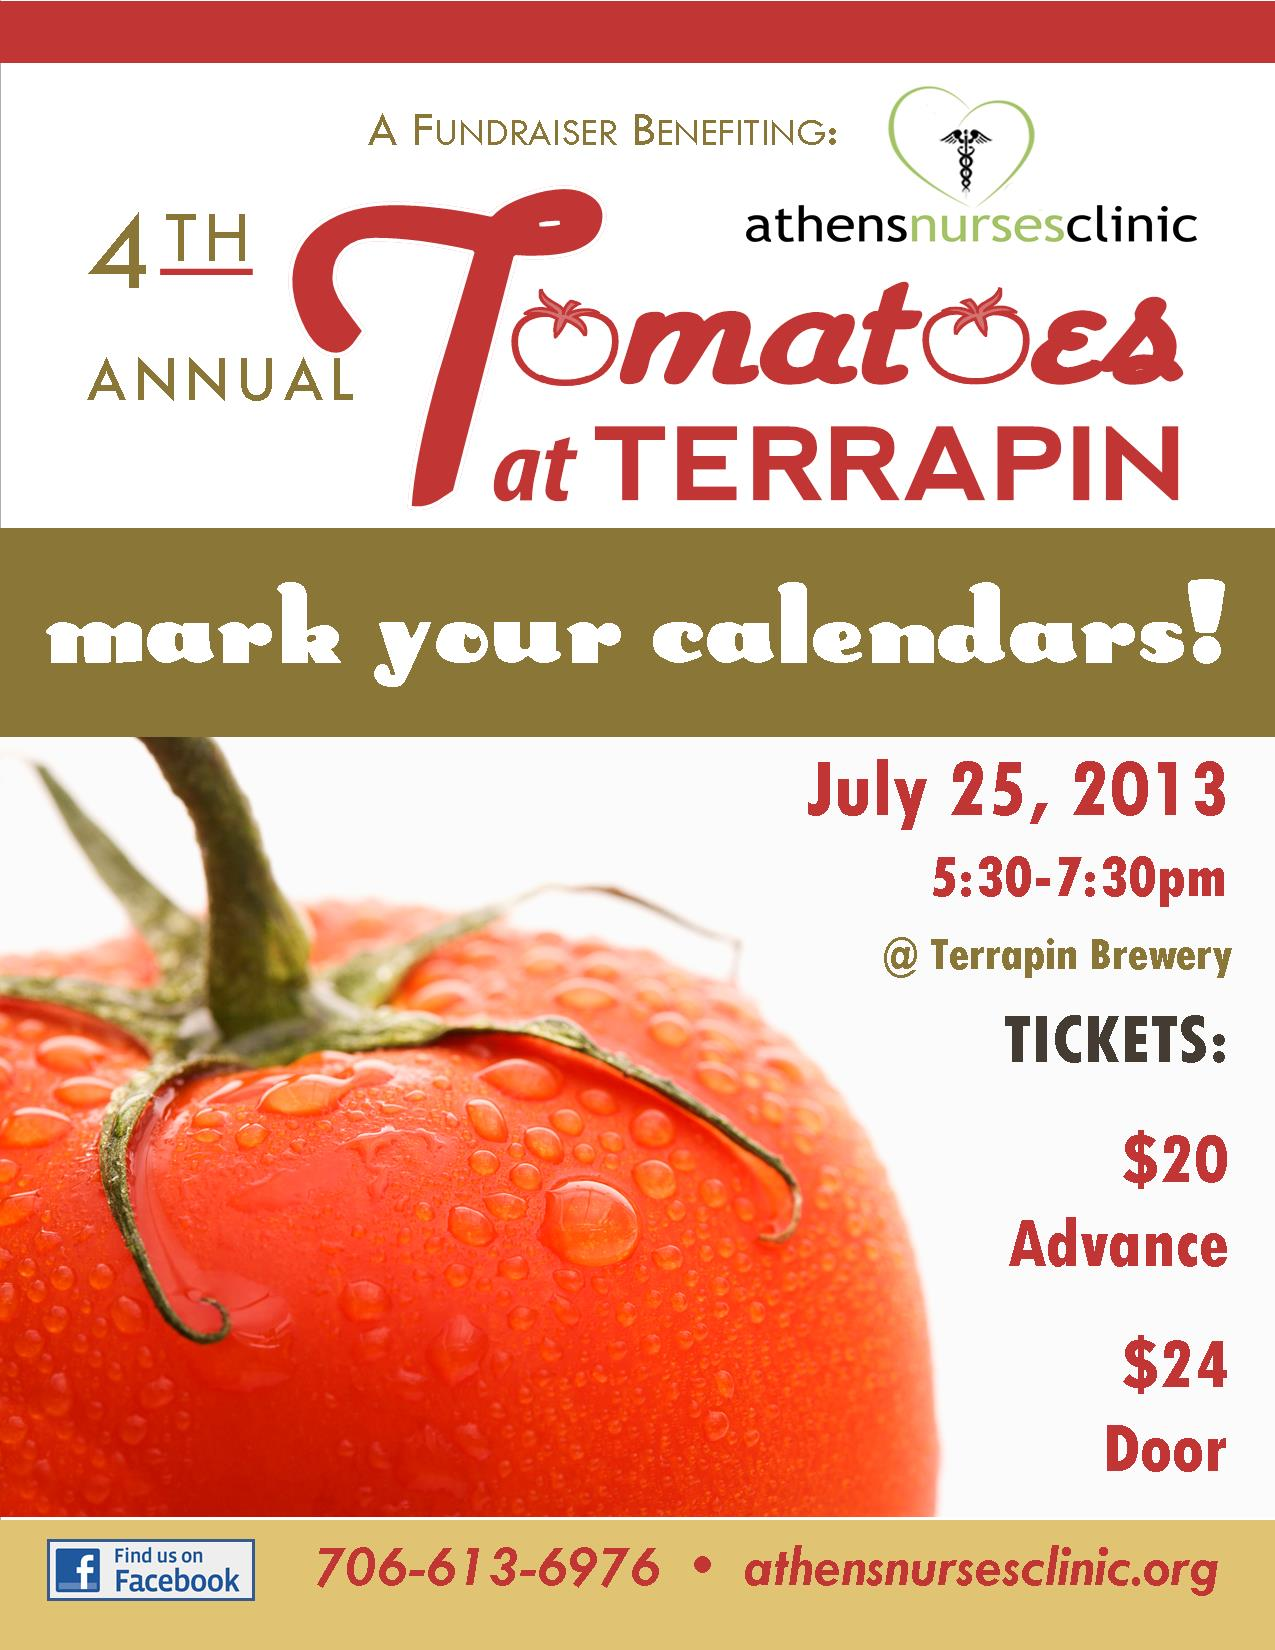 Tomatoes2013_postcard_savedate_DRG_FINAL_RGB_JPG